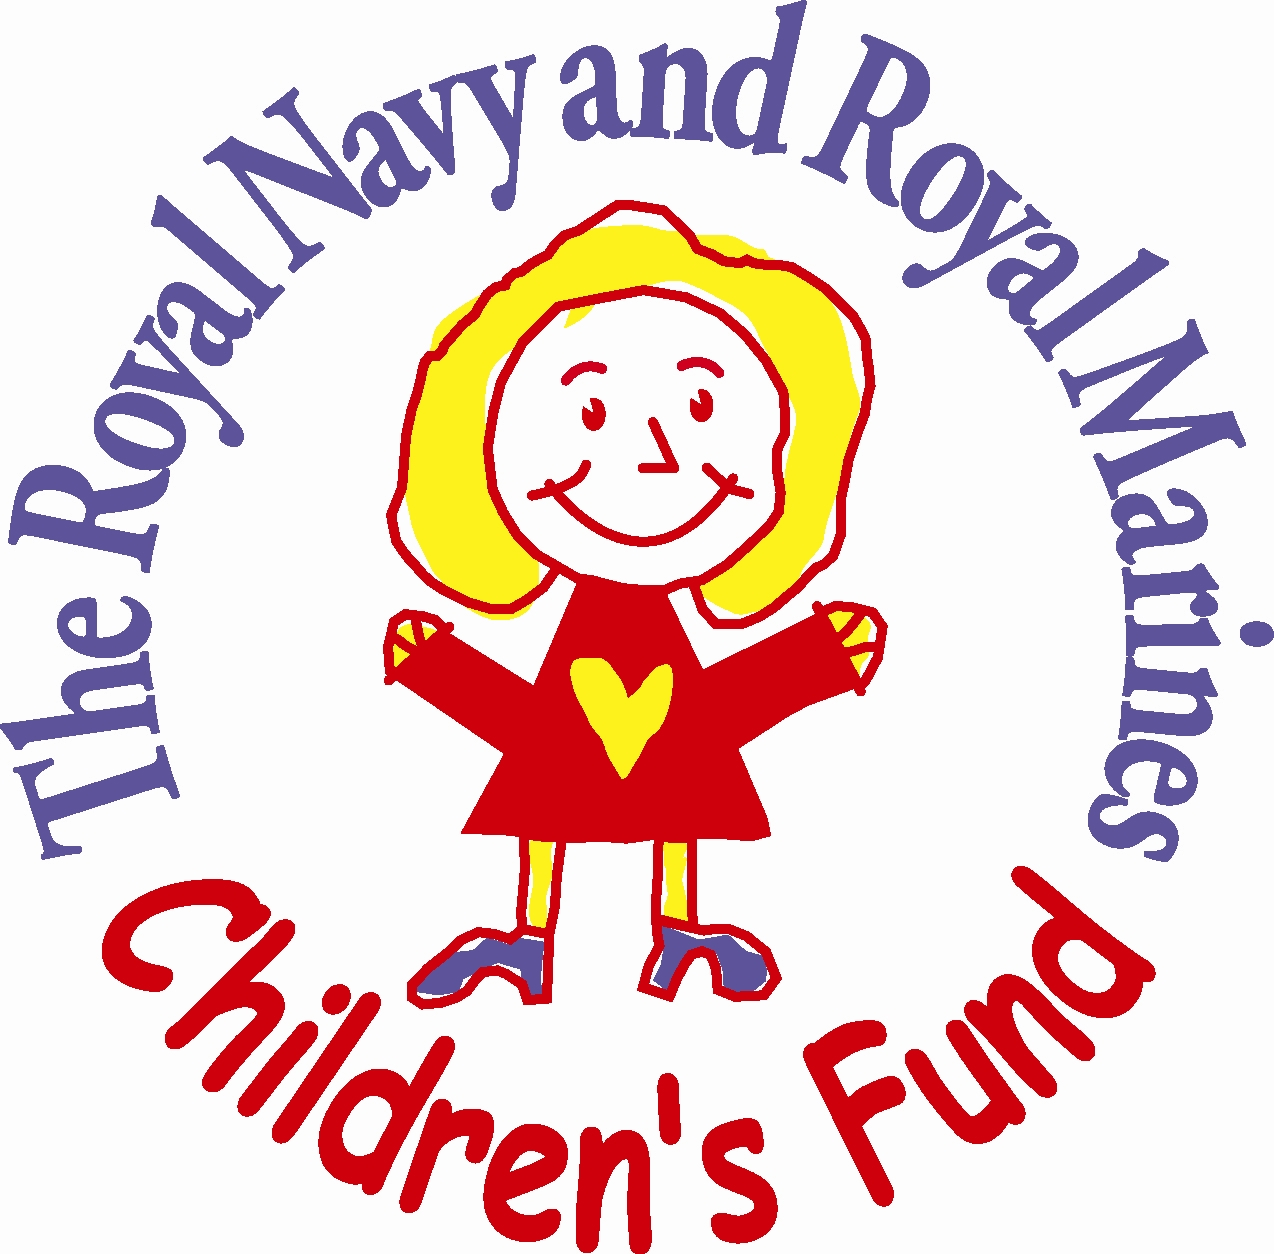 Our Beneficiary Charity: The Royal Navy and Royal Marines Children's Fund